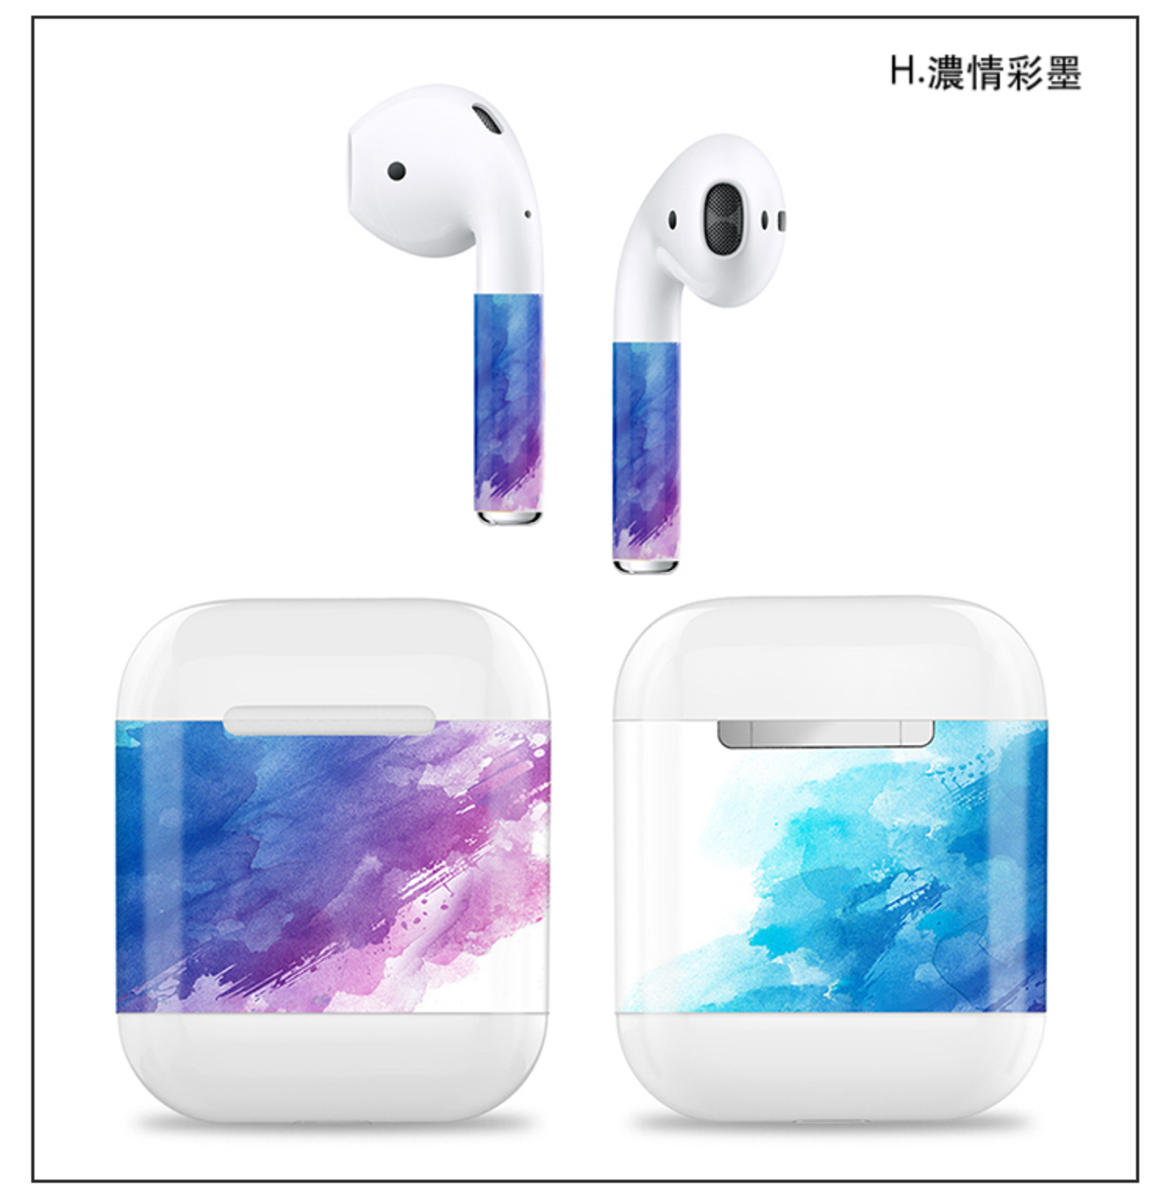 AhaStyle Decal Skins Sticker for Apple Airpods Style H